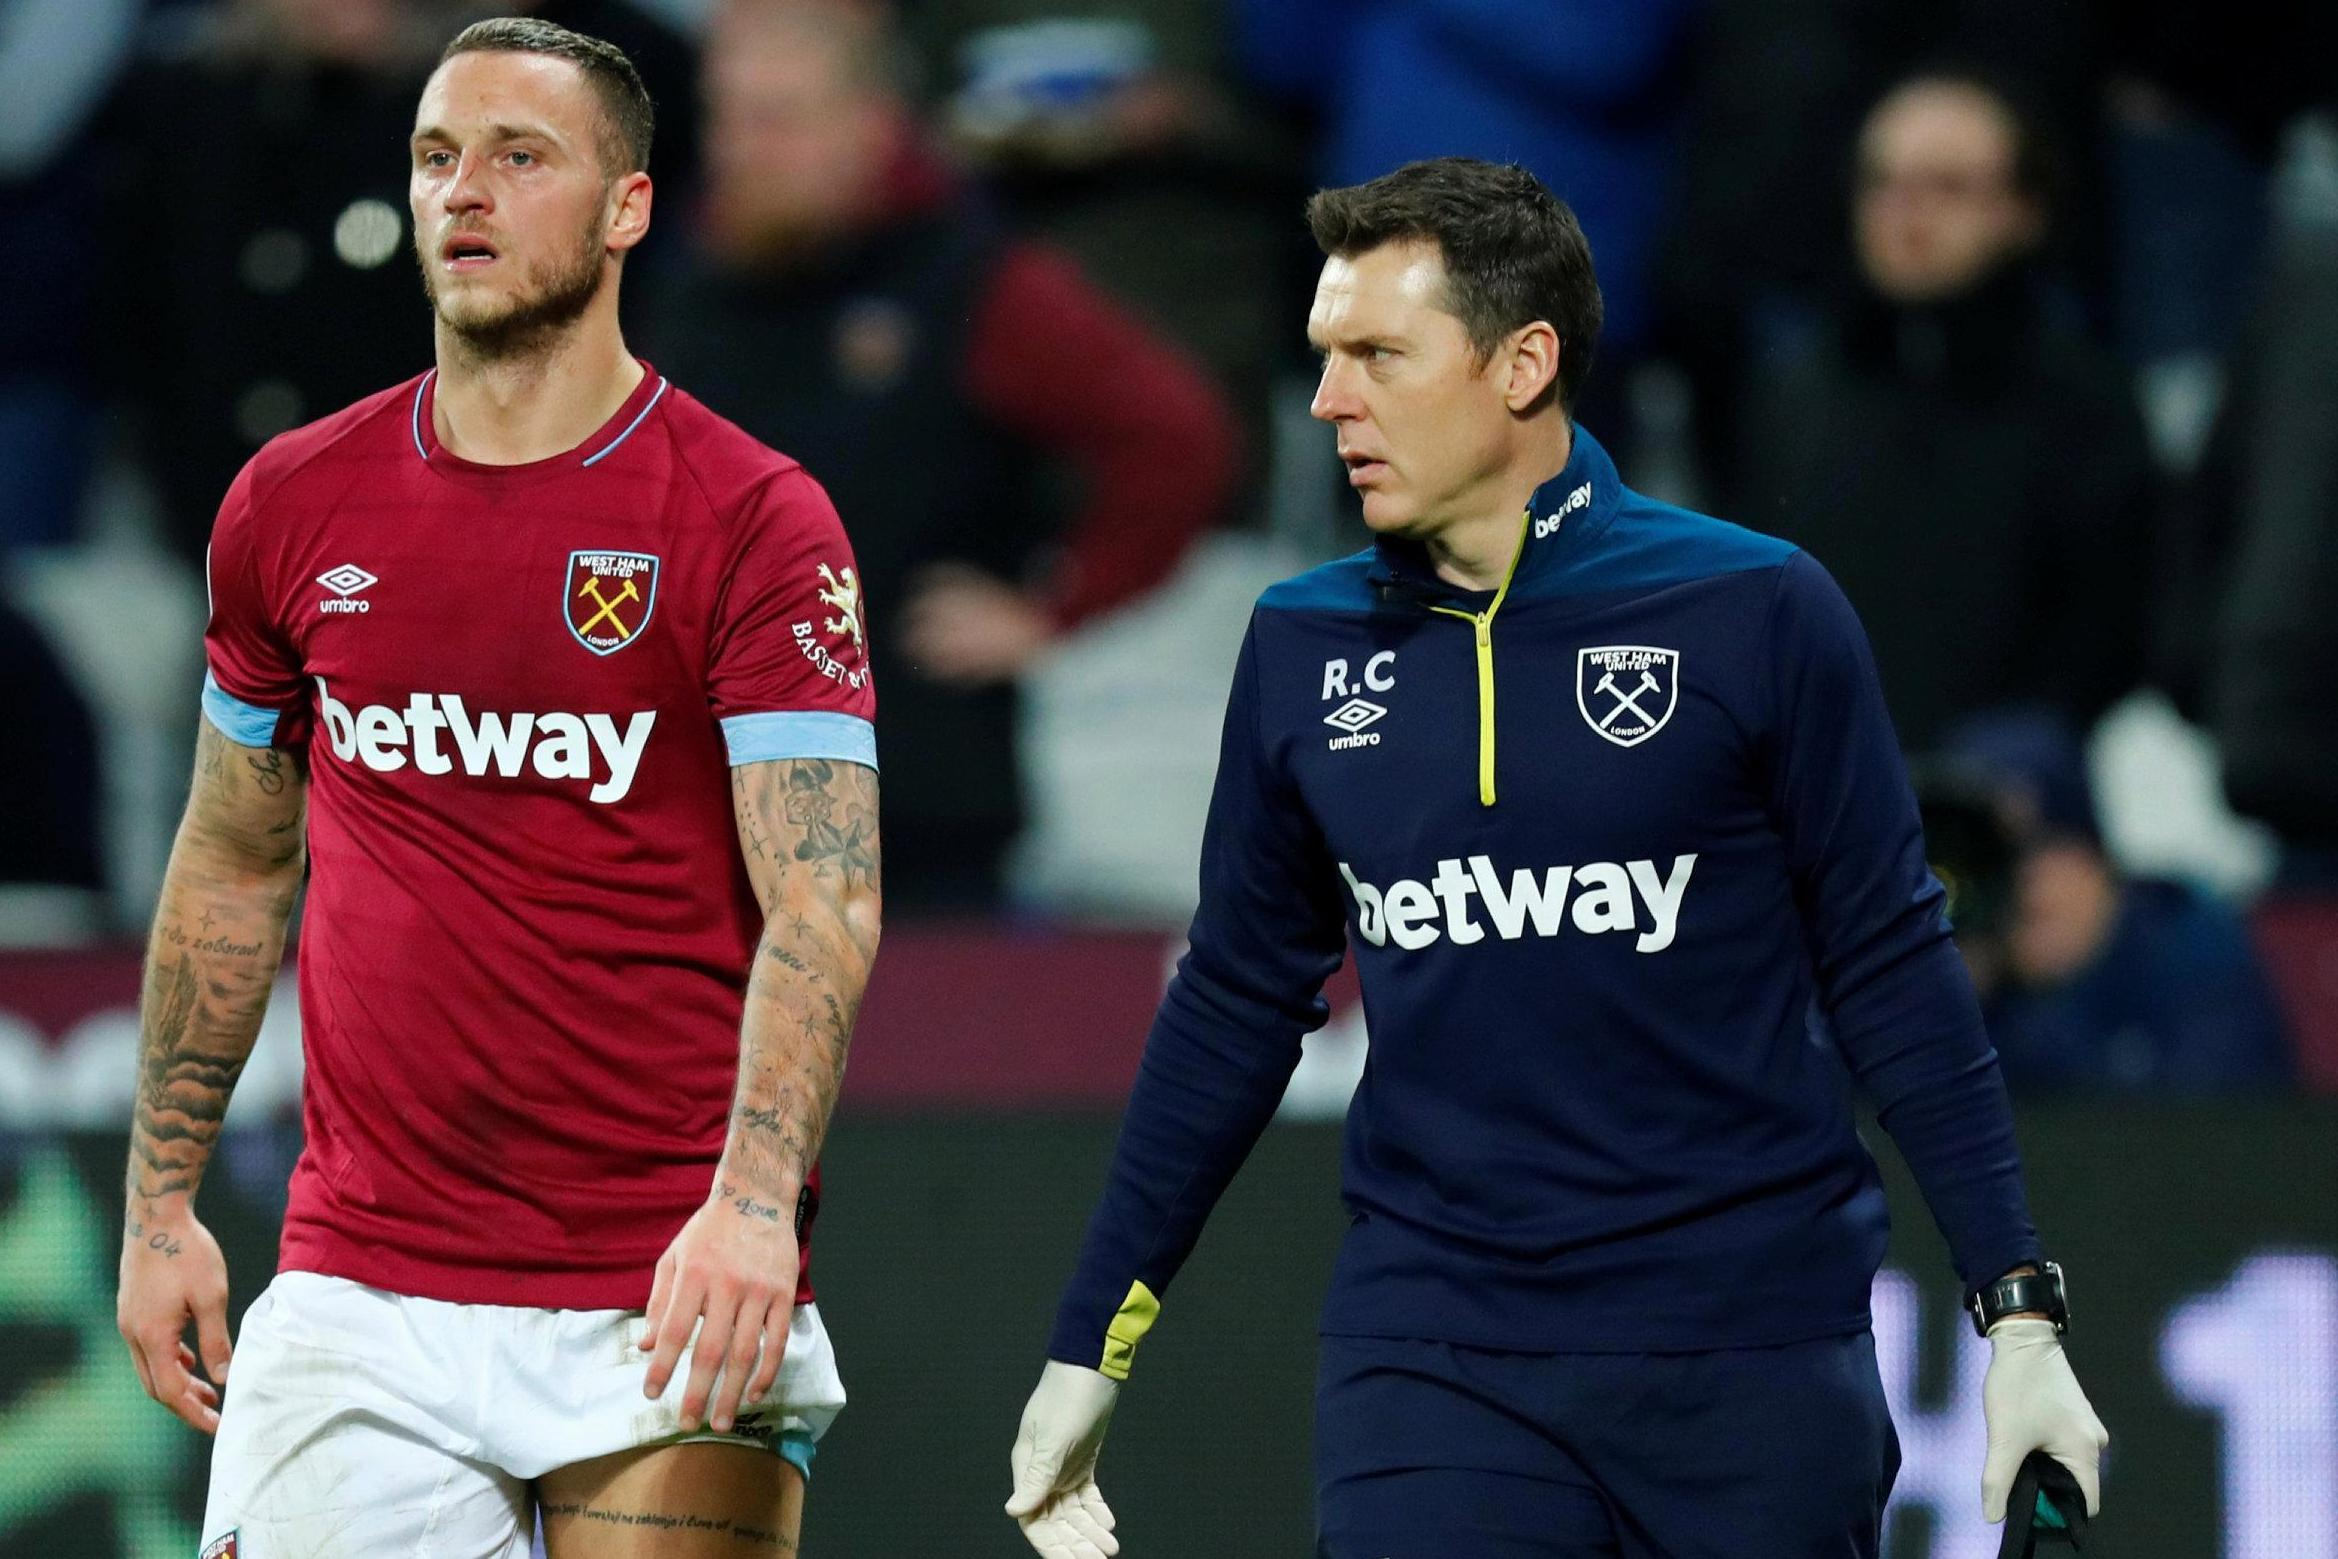 West Ham striker Marko Arnautovic ruled out until New Year with hamstring injury